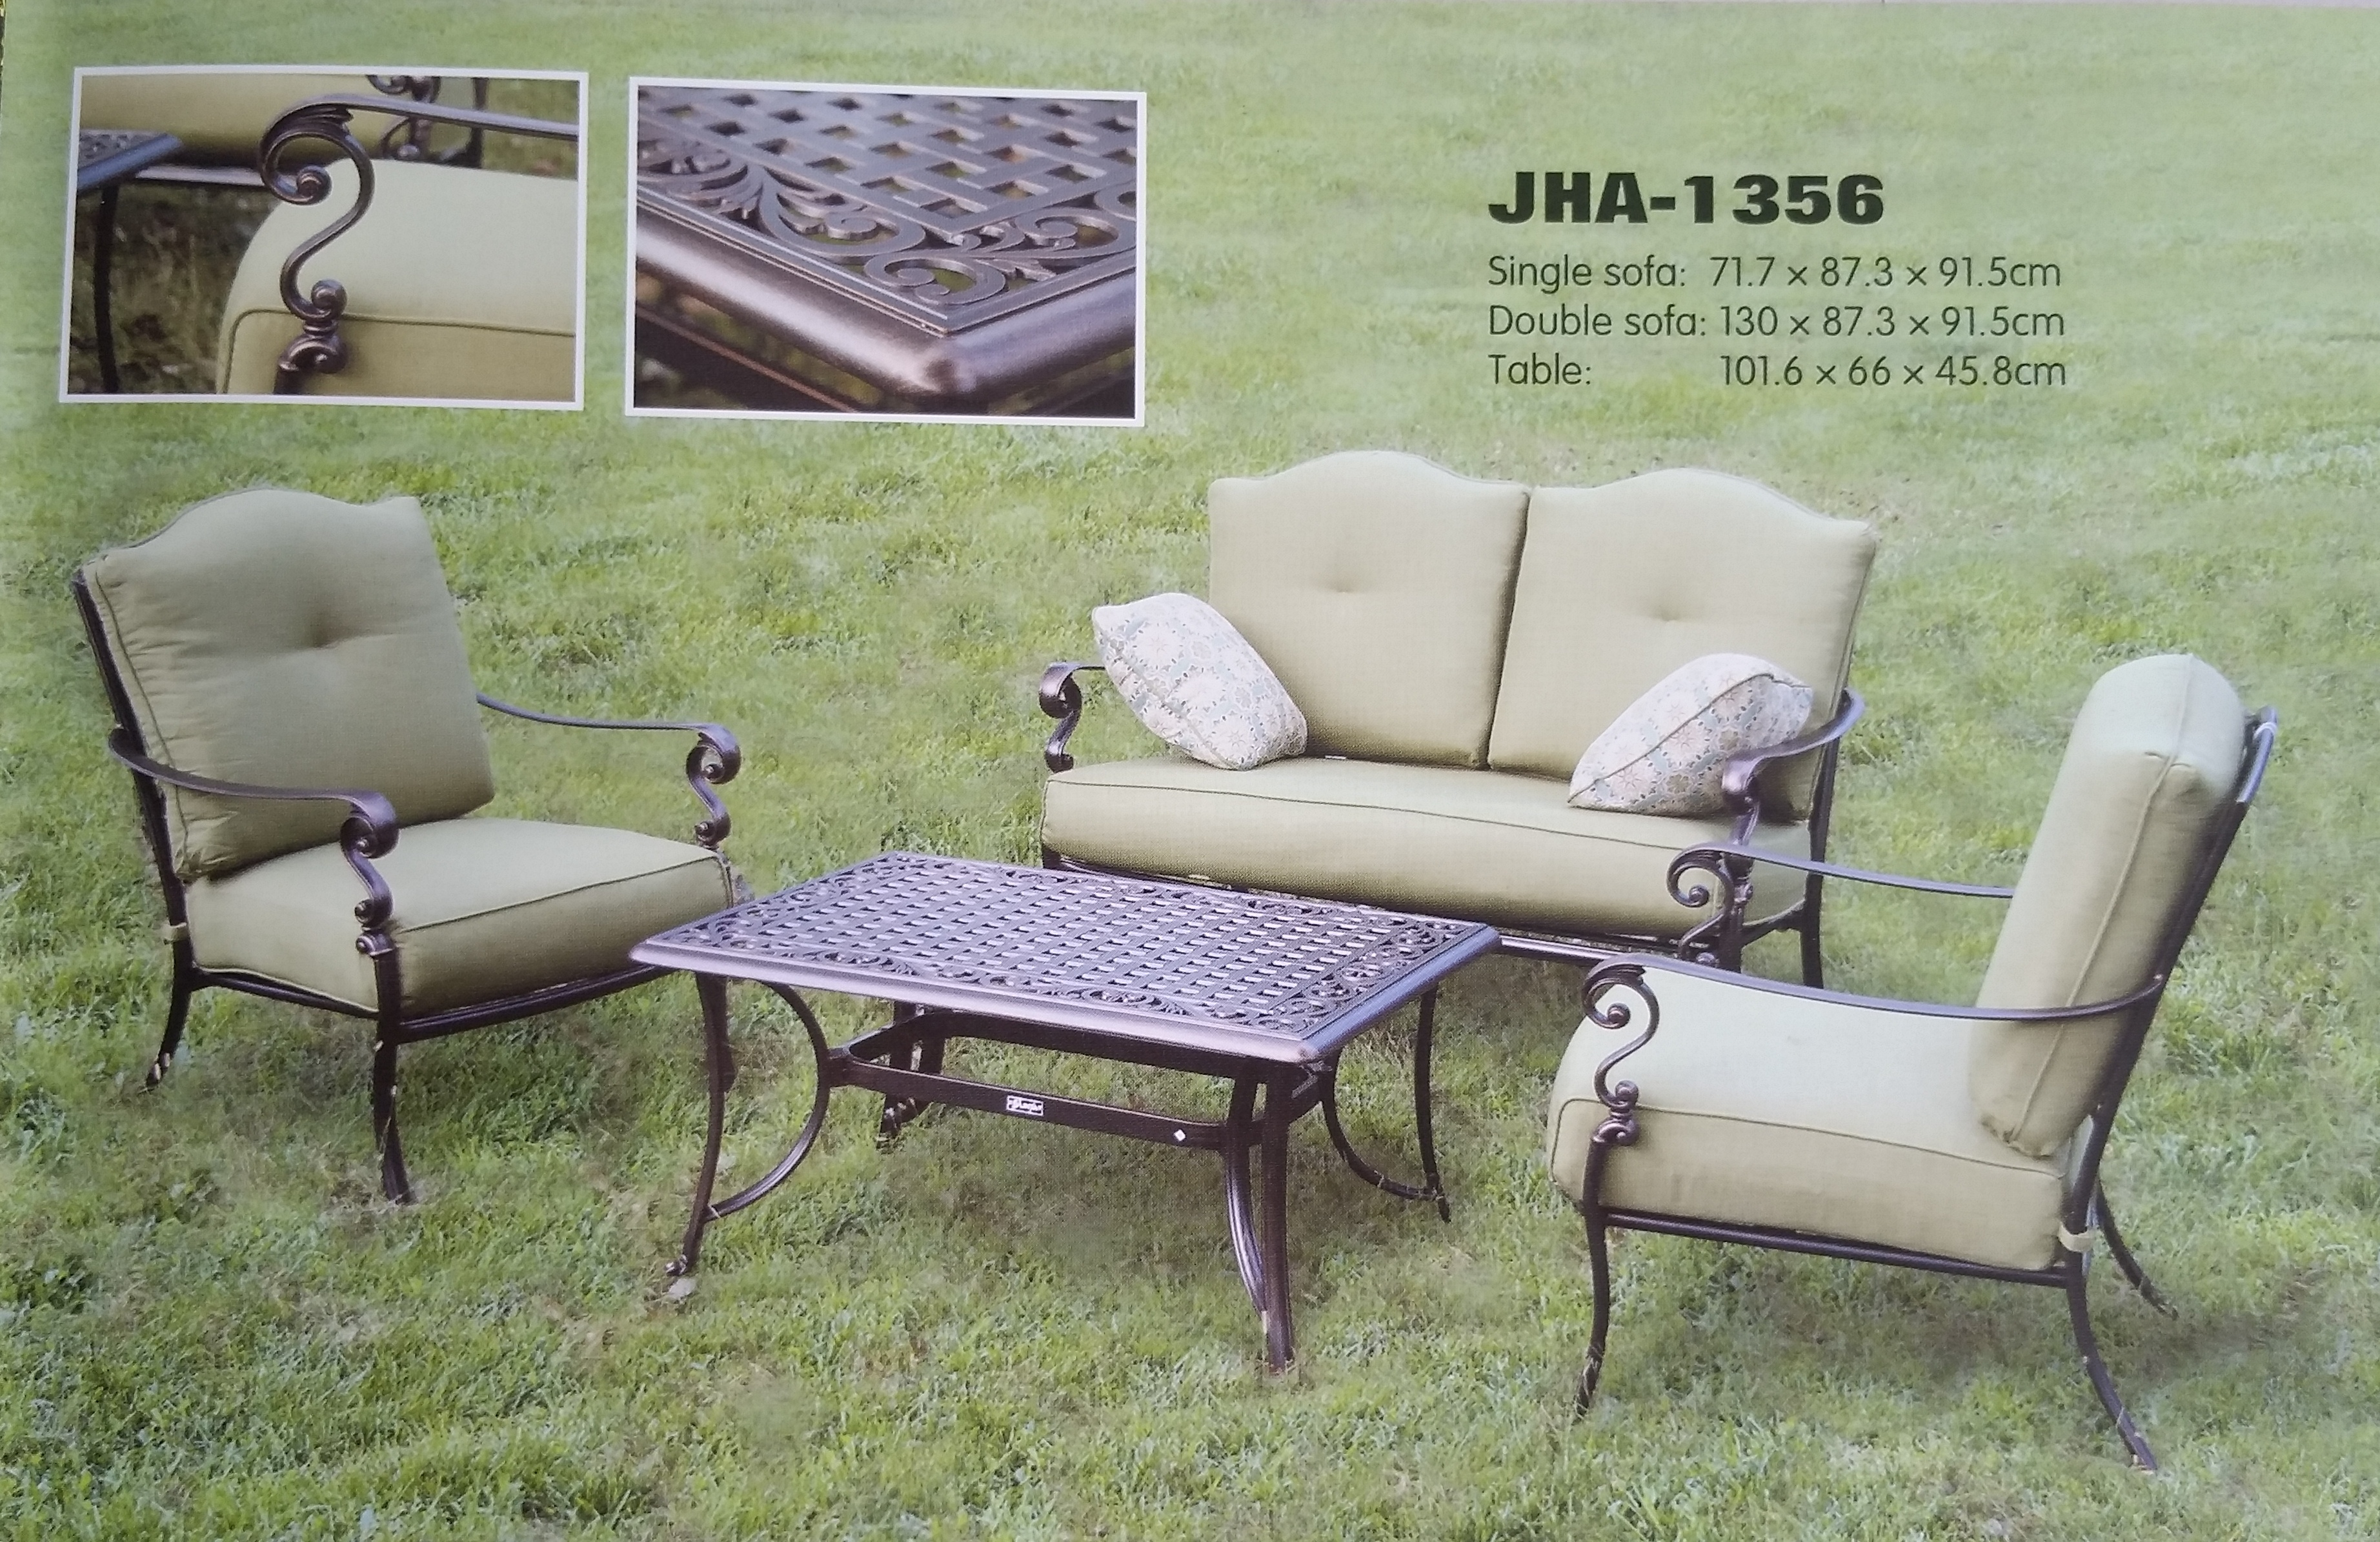 Lawn Furniture Manufacturer We are the lawn furniture manufacturer, had hundreds of satisfied customers in our list, decon is a renowned brand in lawn furniture, supply all commercial and residential projects for more than fifteen years, drop by our showroom at Damansara Perdana to view all our amazing collection of lawn furniture.